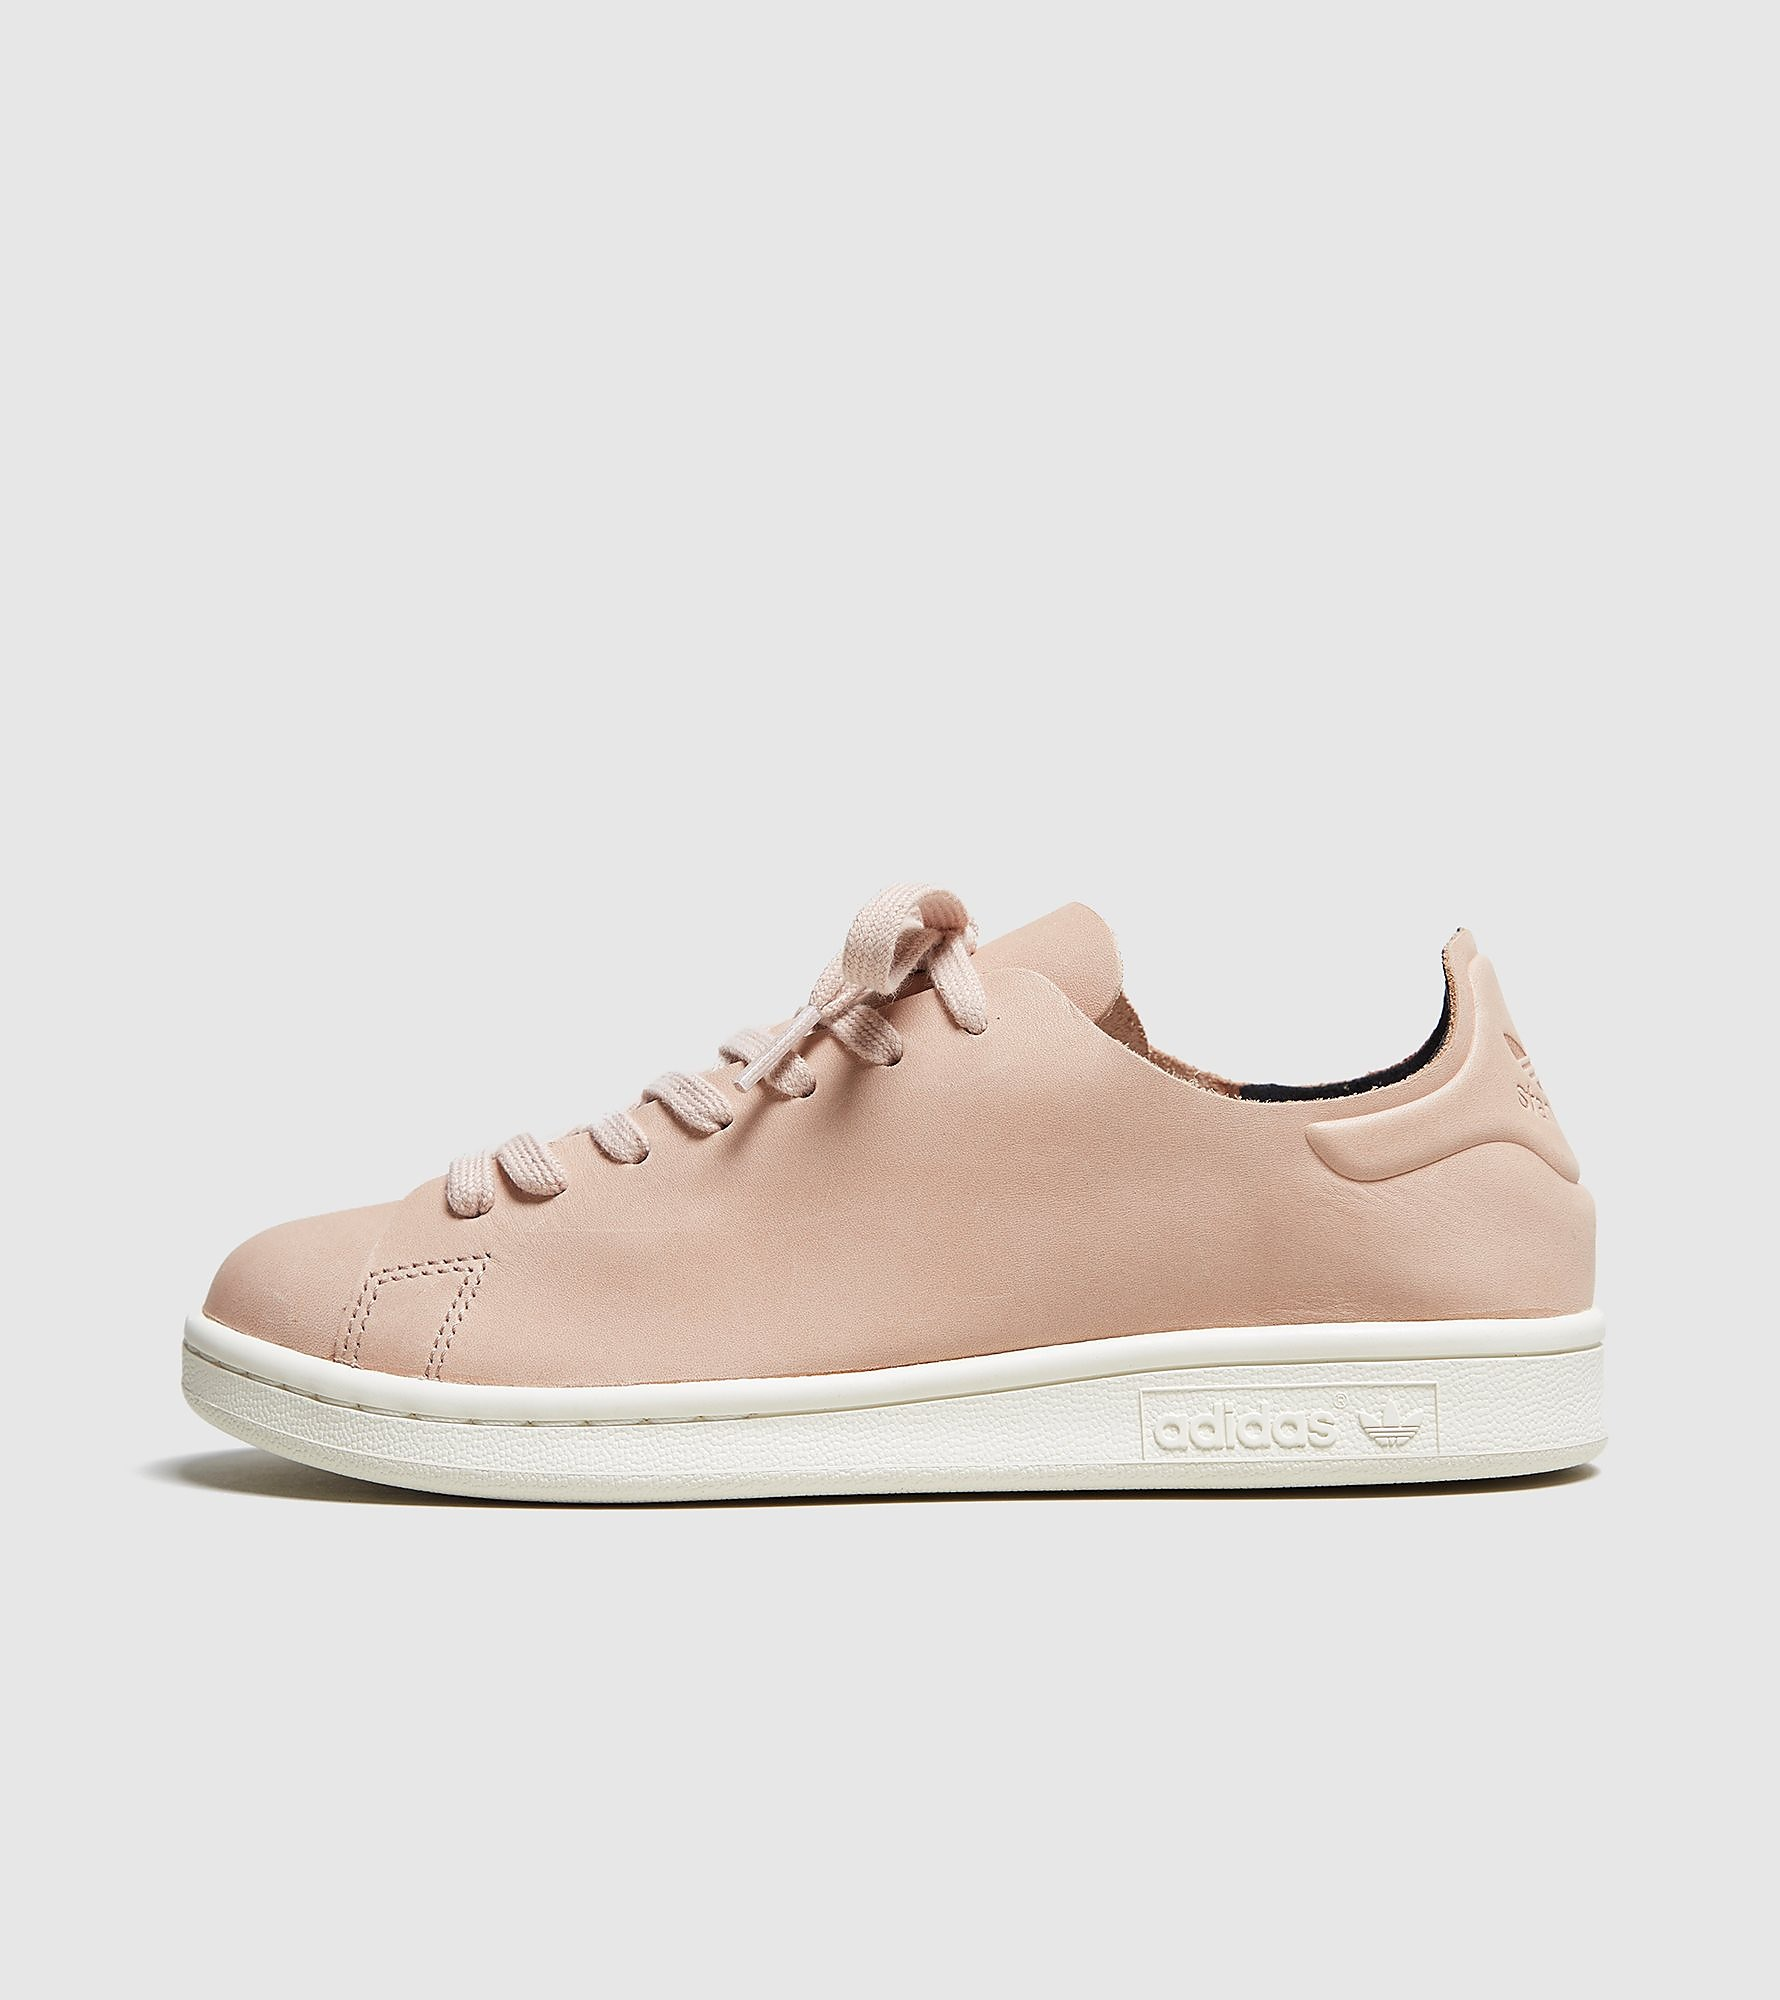 adidas Originals Stan Smith Nude Women's